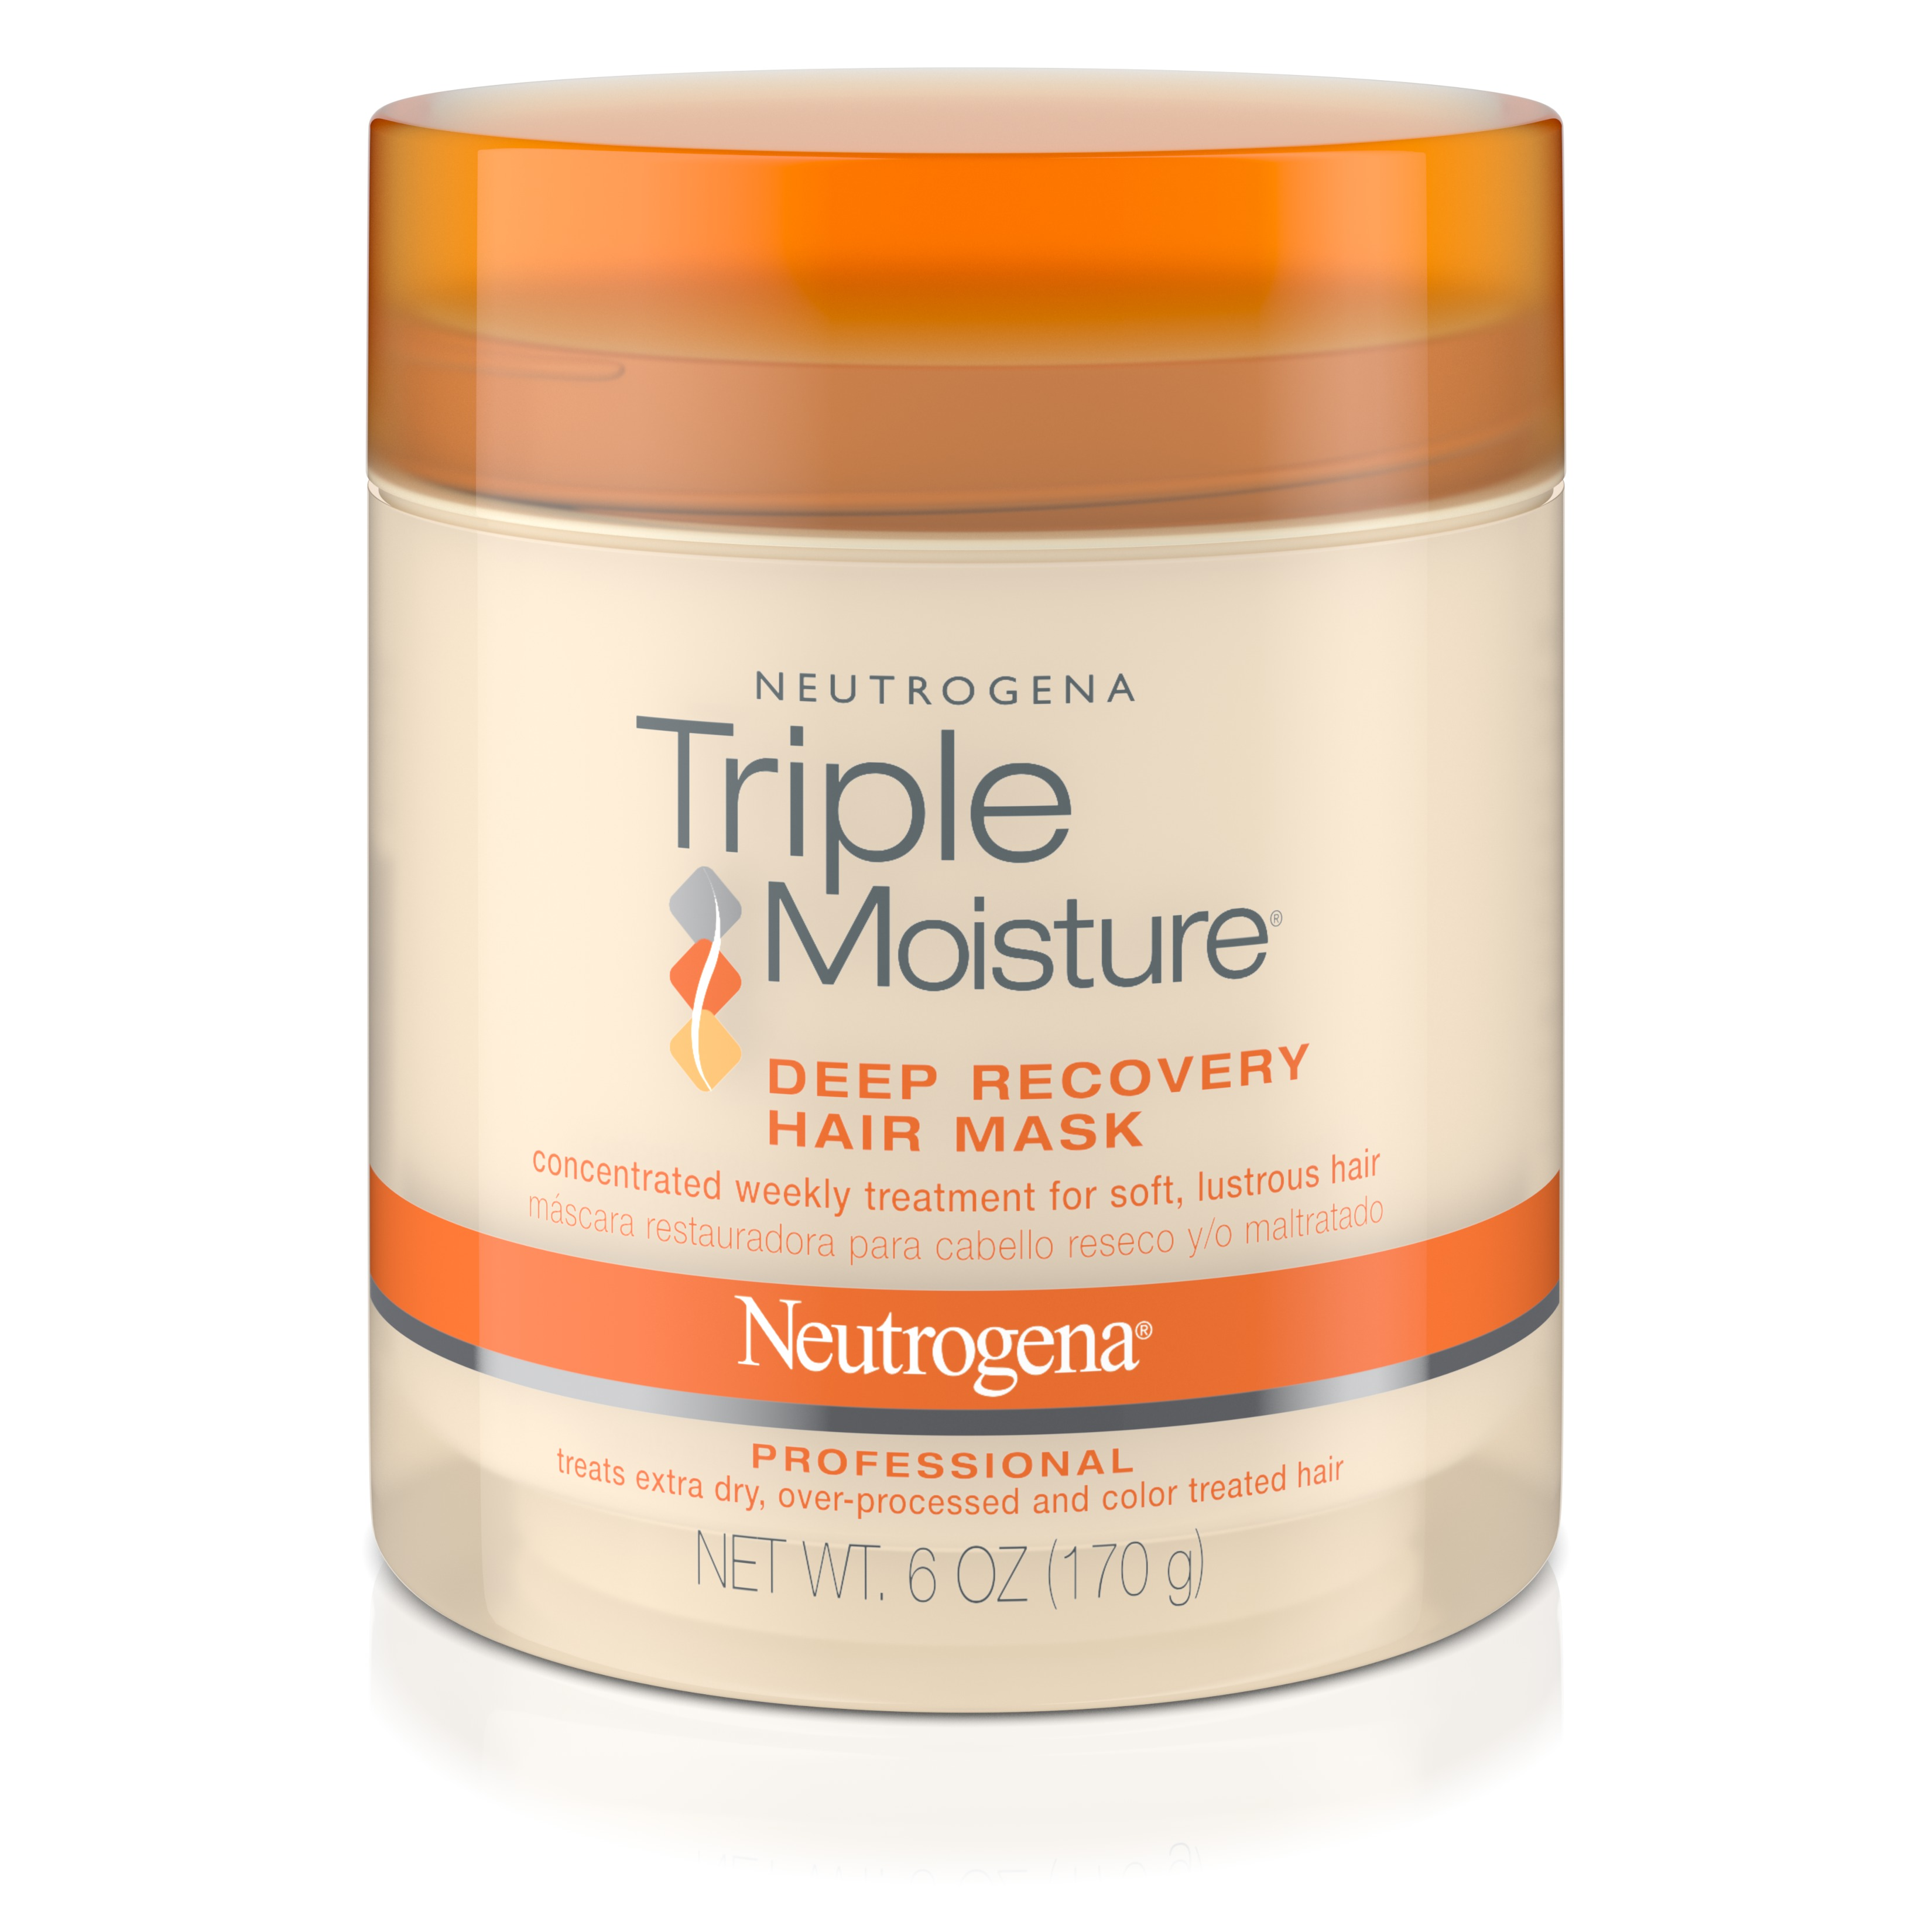 Neutrogena Triple Moisture Deep Recovery Hair Mask Moisturizer, 6 oz